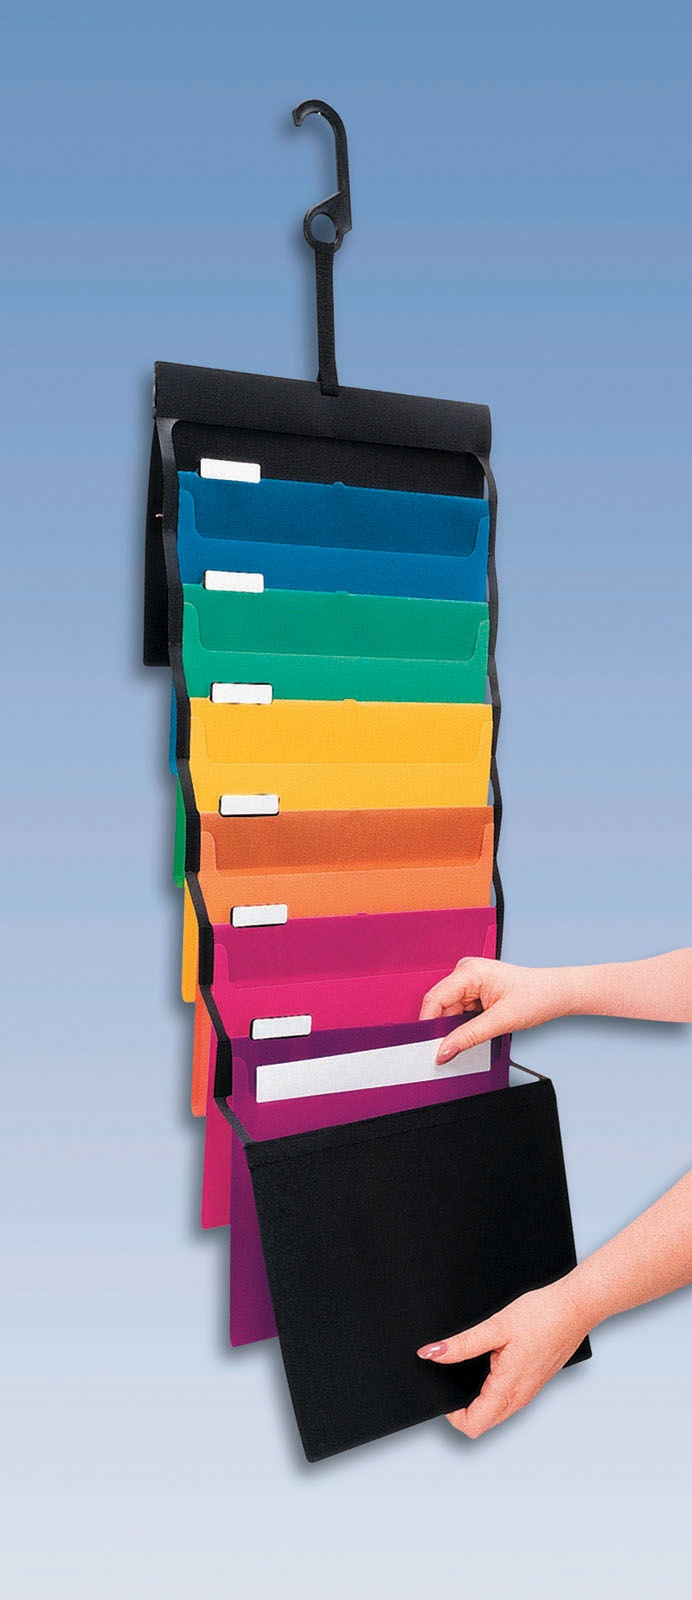 The Pendaflex Desk Free Hanging Organizer May Be A Good Solution For Active  Filing For Those